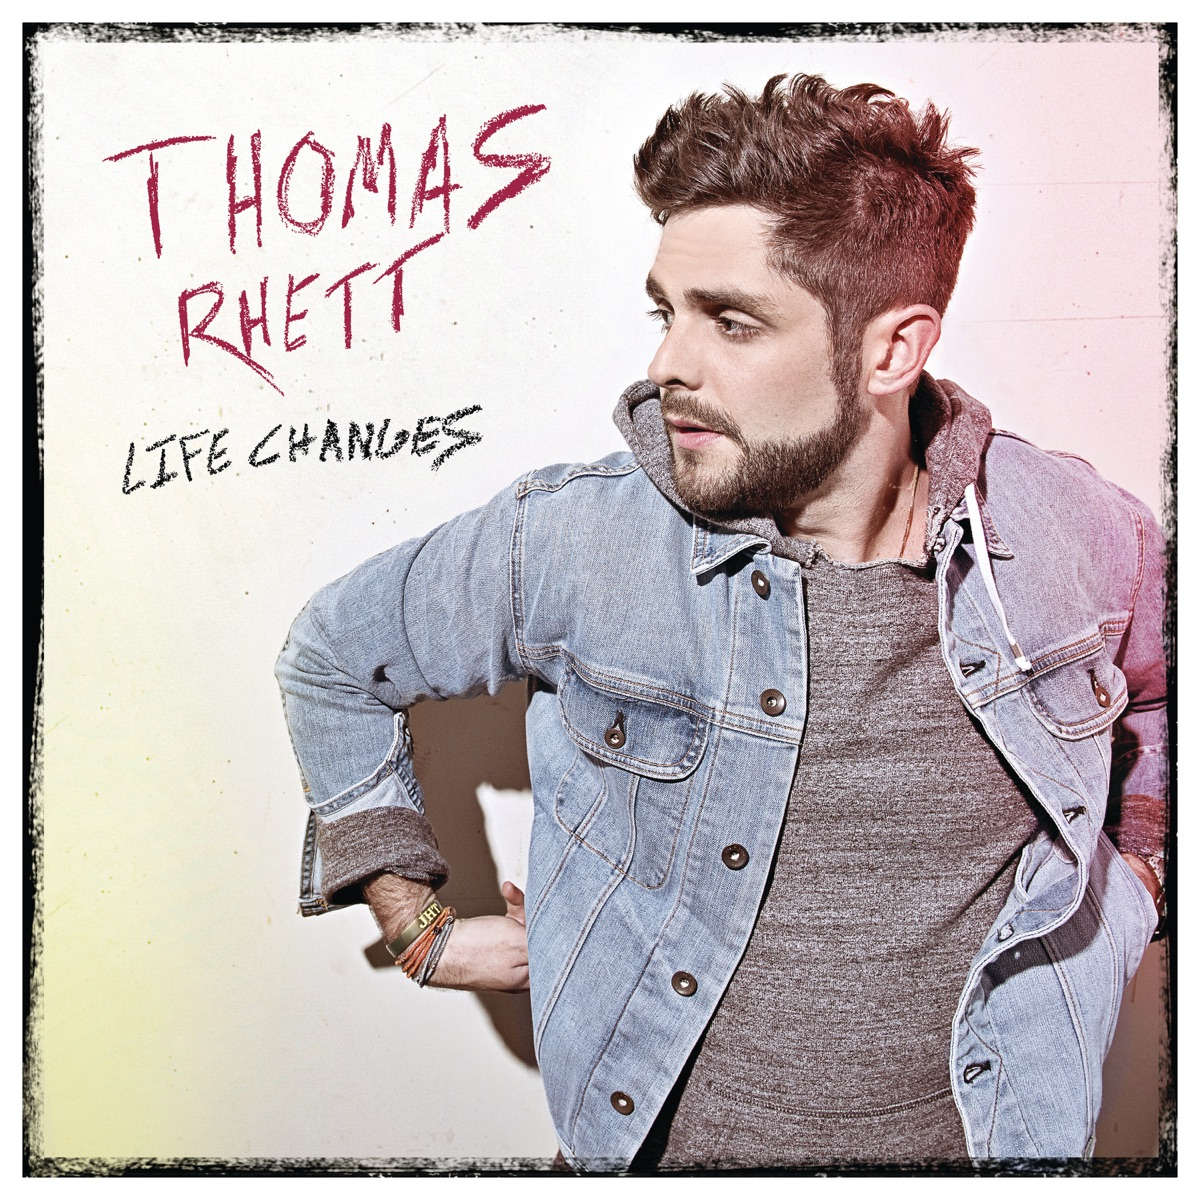 Life Changes Thomas Rhett CD cover